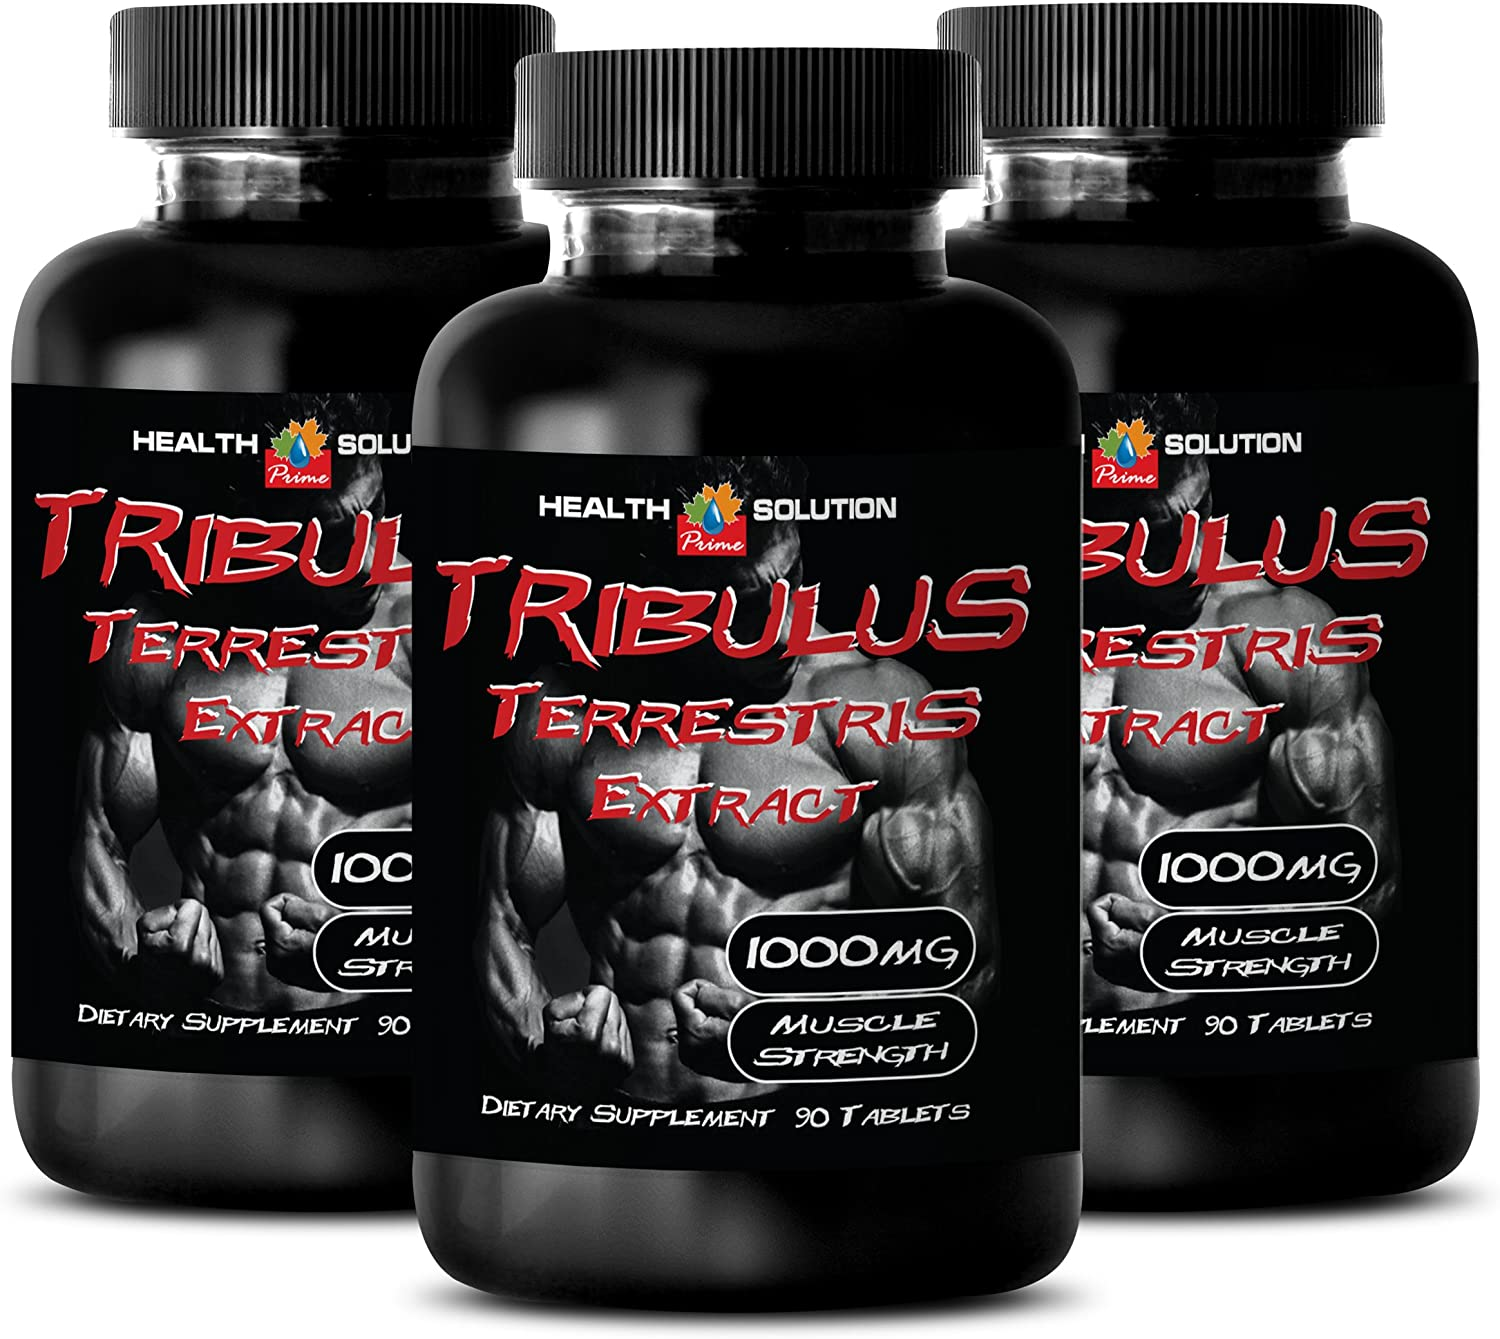 Tribulus terrestris for Men - TRIBULUS TERRESTRIS Extract 1000MG - Support libido (3 Bottles 270 Tablets)